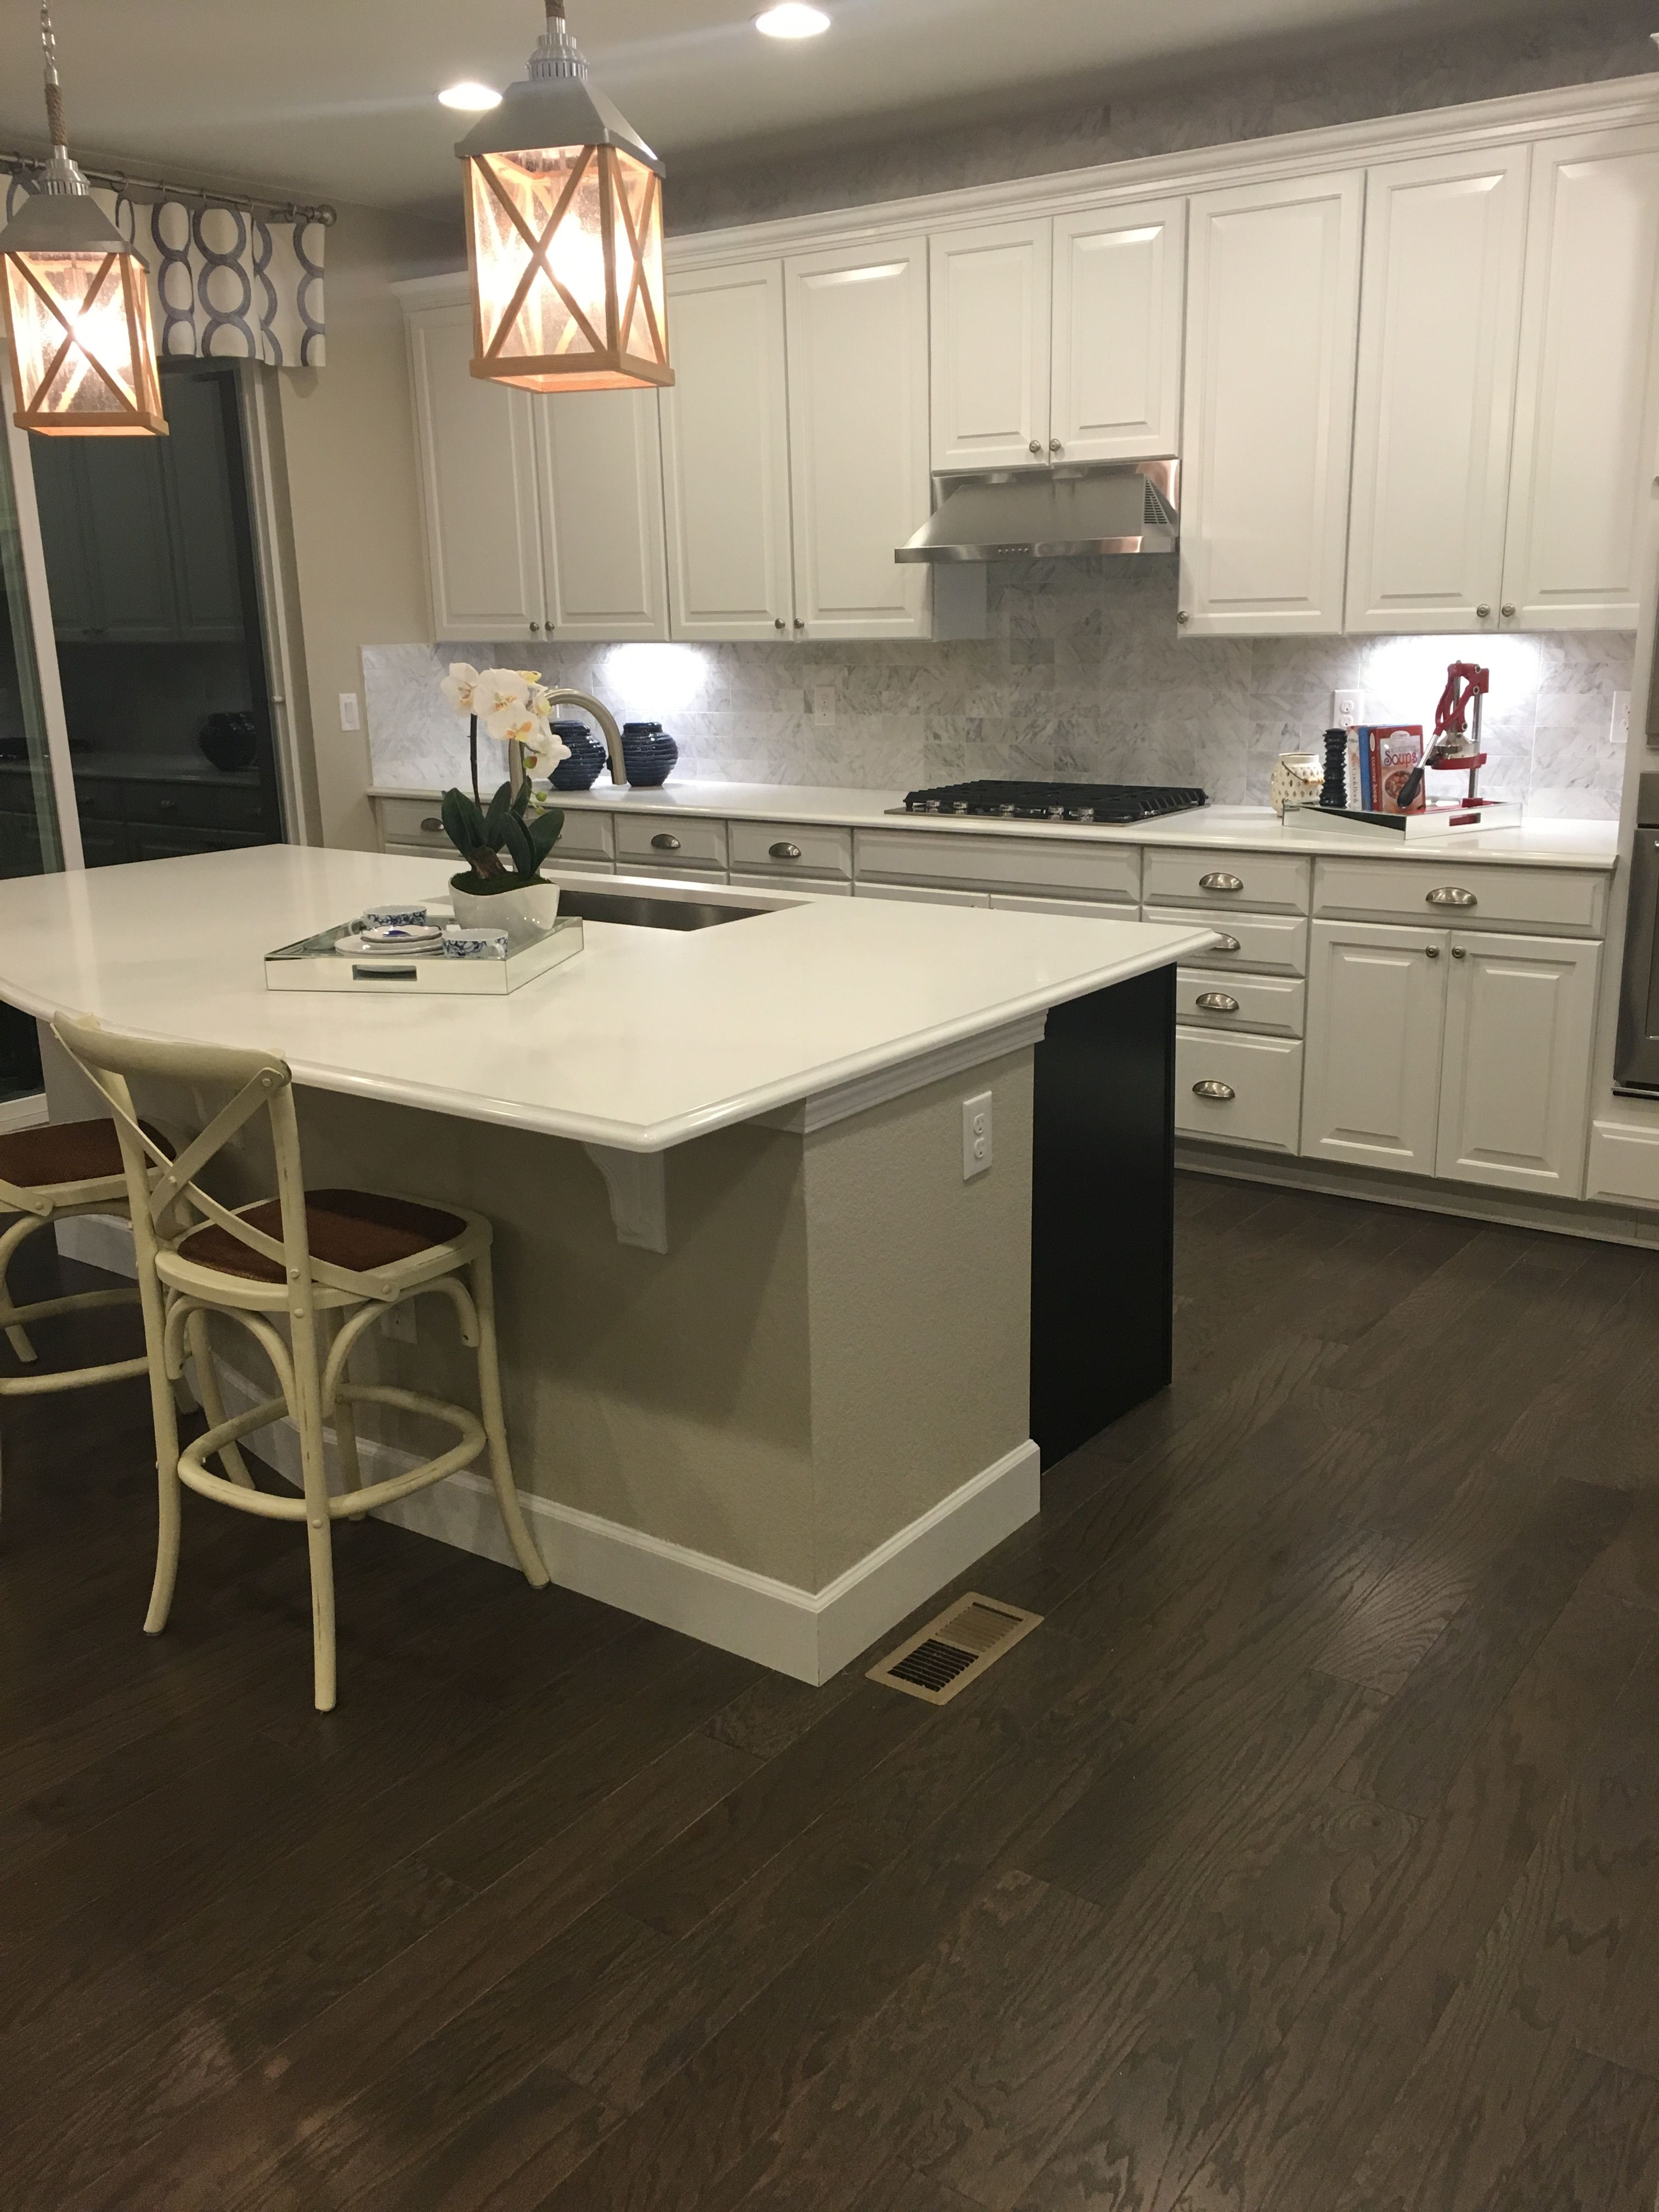 Timberlake rushmore linen cabinets white quartz ctop marble timberlake rushmore linen cabinets white quartz ctop marble backsplash dailygadgetfo Image collections